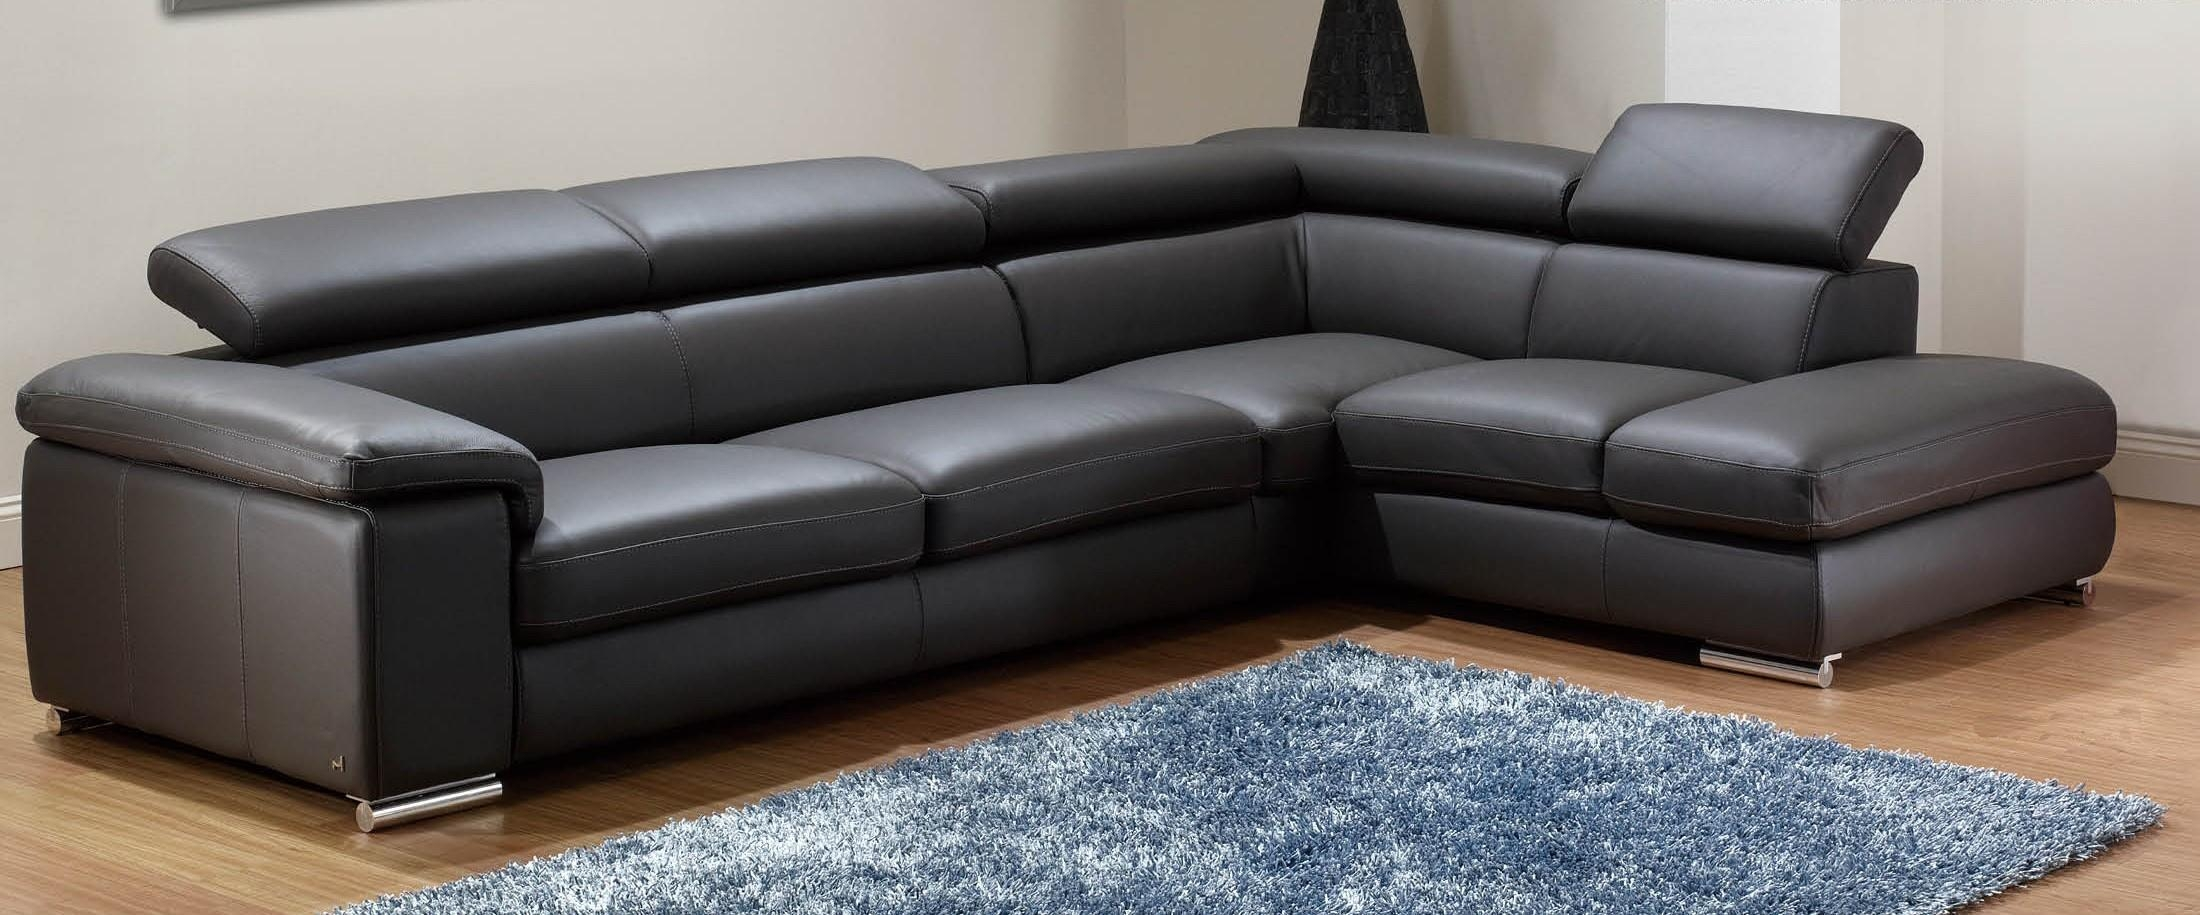 Sofas : Fabulous Leather Sleeper Sofa Sofas And Sectionals Modern Pertaining To Leather Sofa Sectionals For Sale (View 20 of 20)